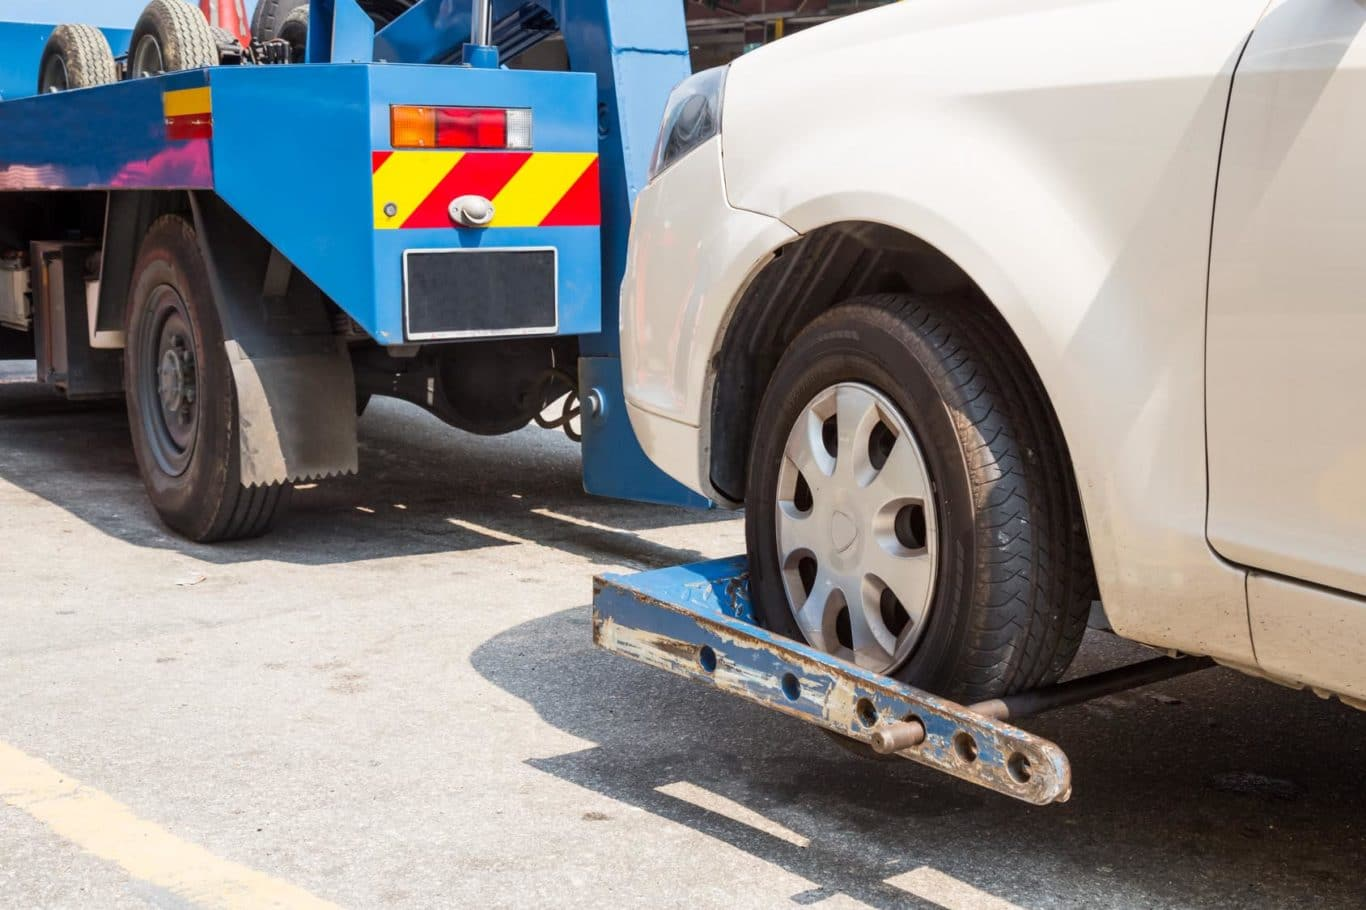 Kilmacanogue expert Car Recovery services